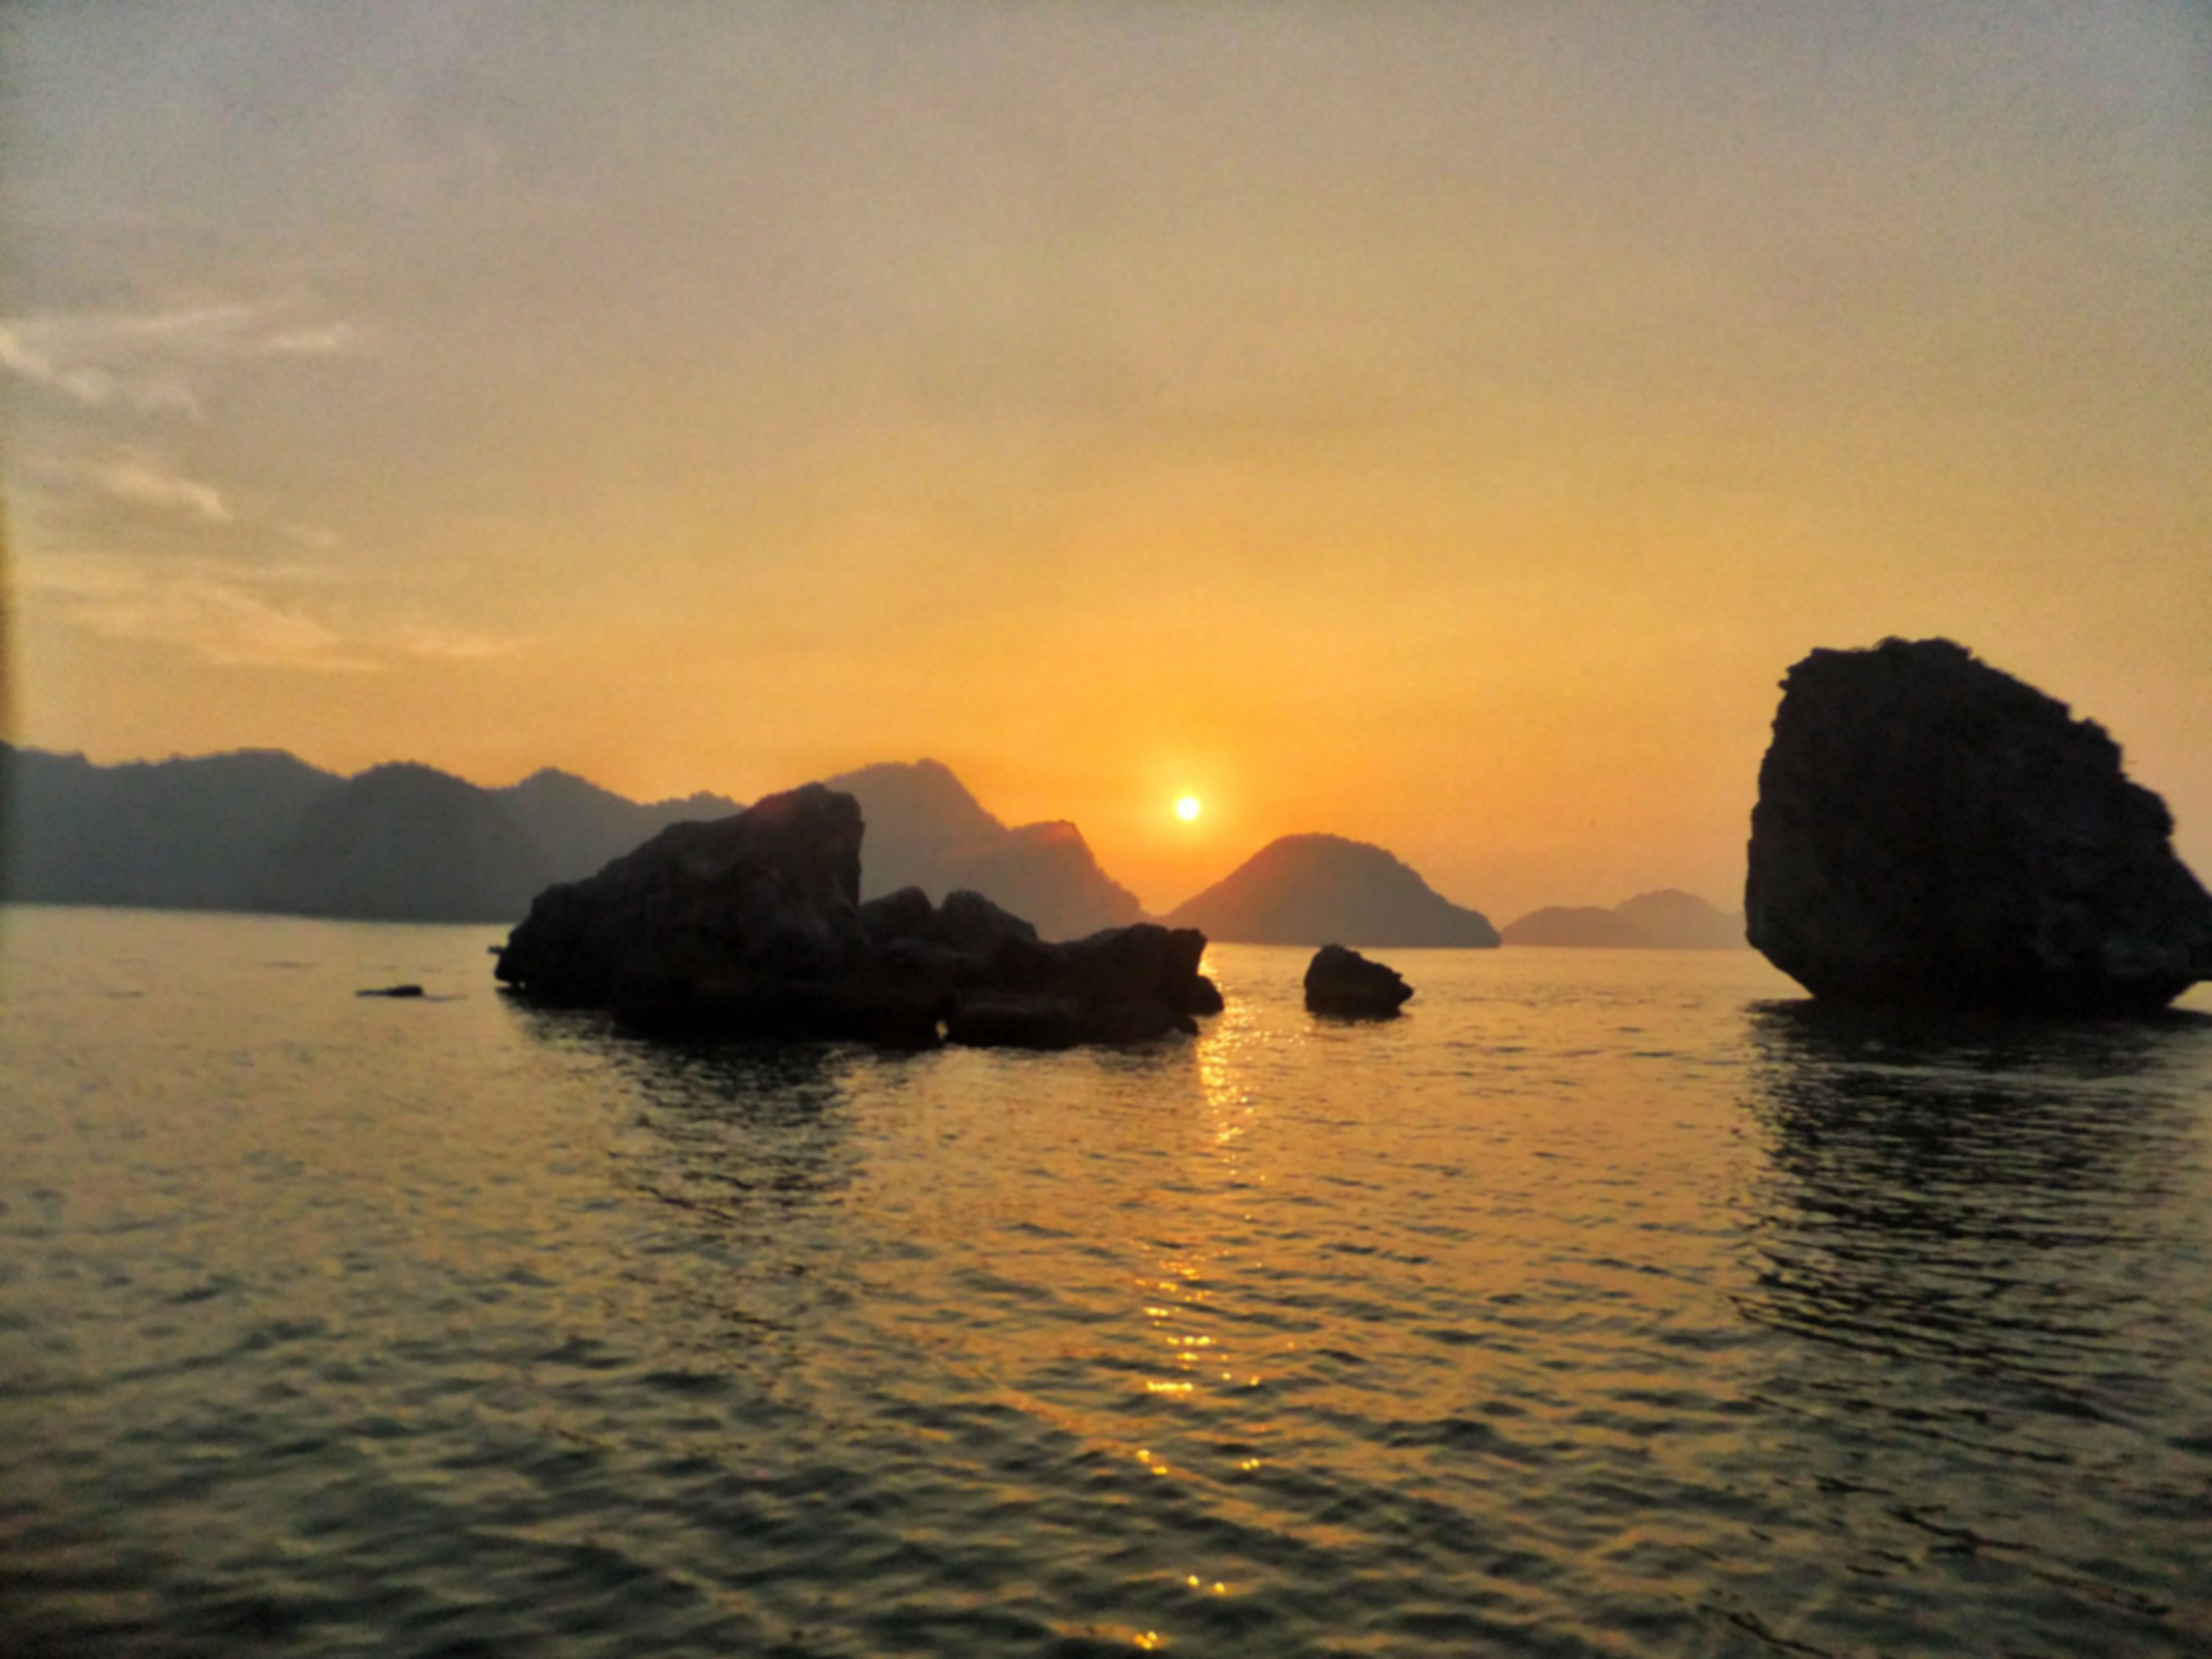 Tour of Halong Bay